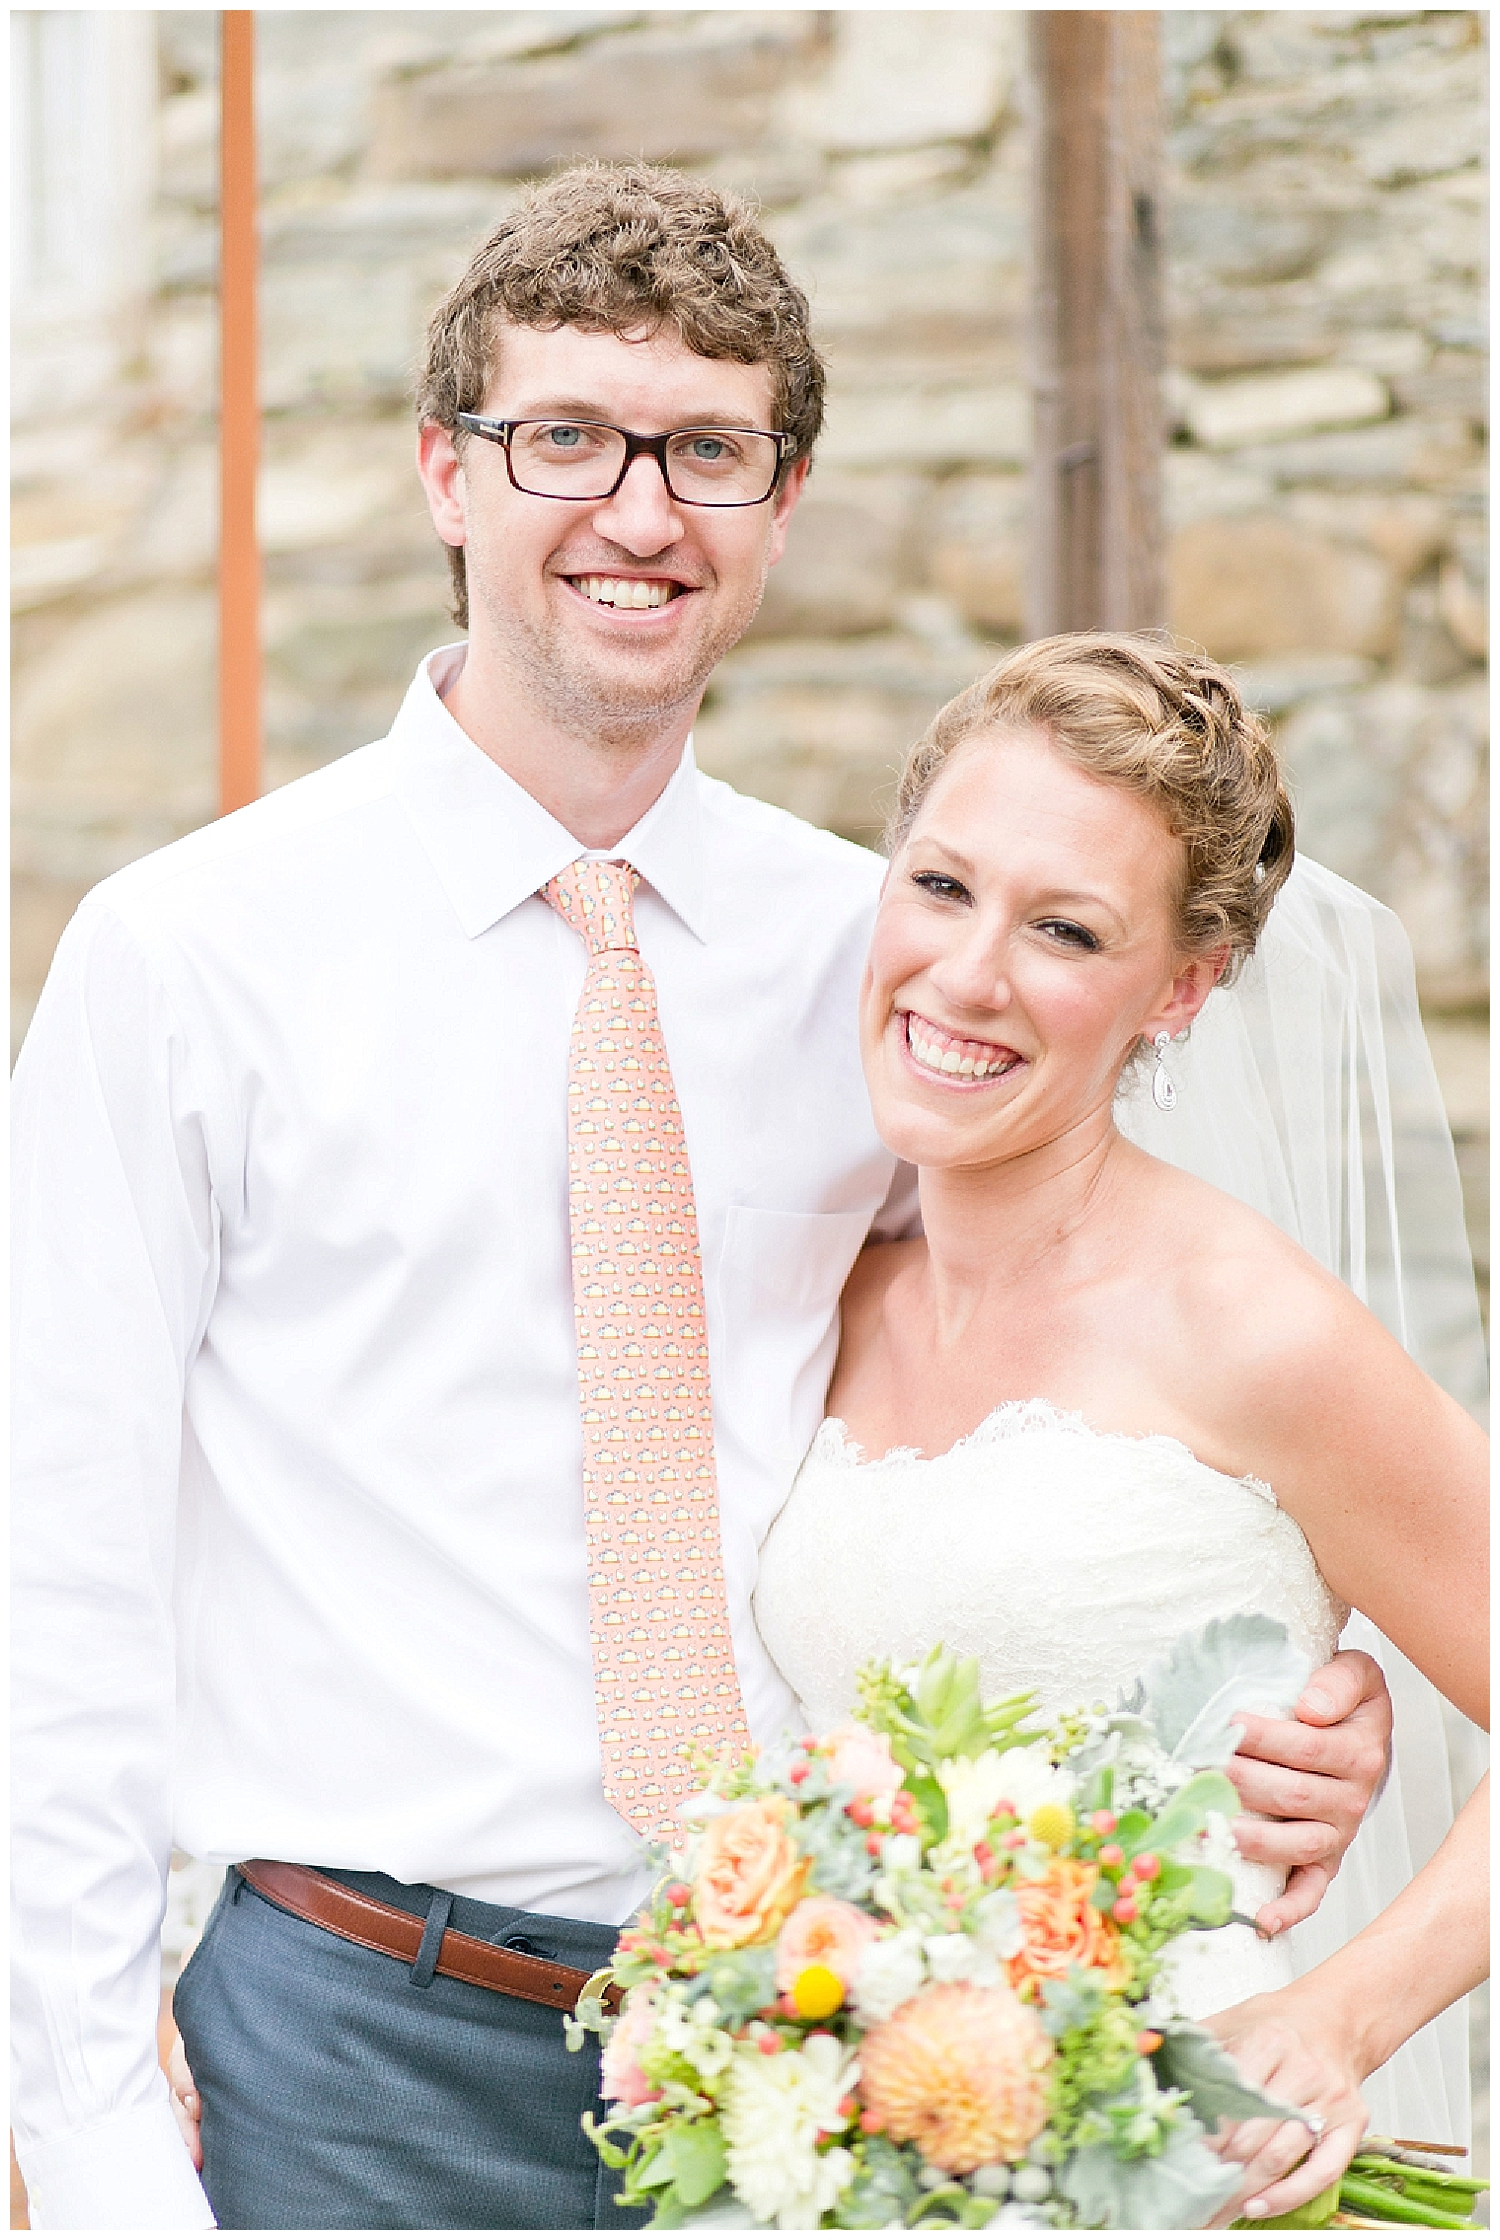 Red Oak Weddings | Wedding + Lifestyle Blog for the Modern Couple in NY, NJ + PA | Real Weddings | Cassi Claire Photography